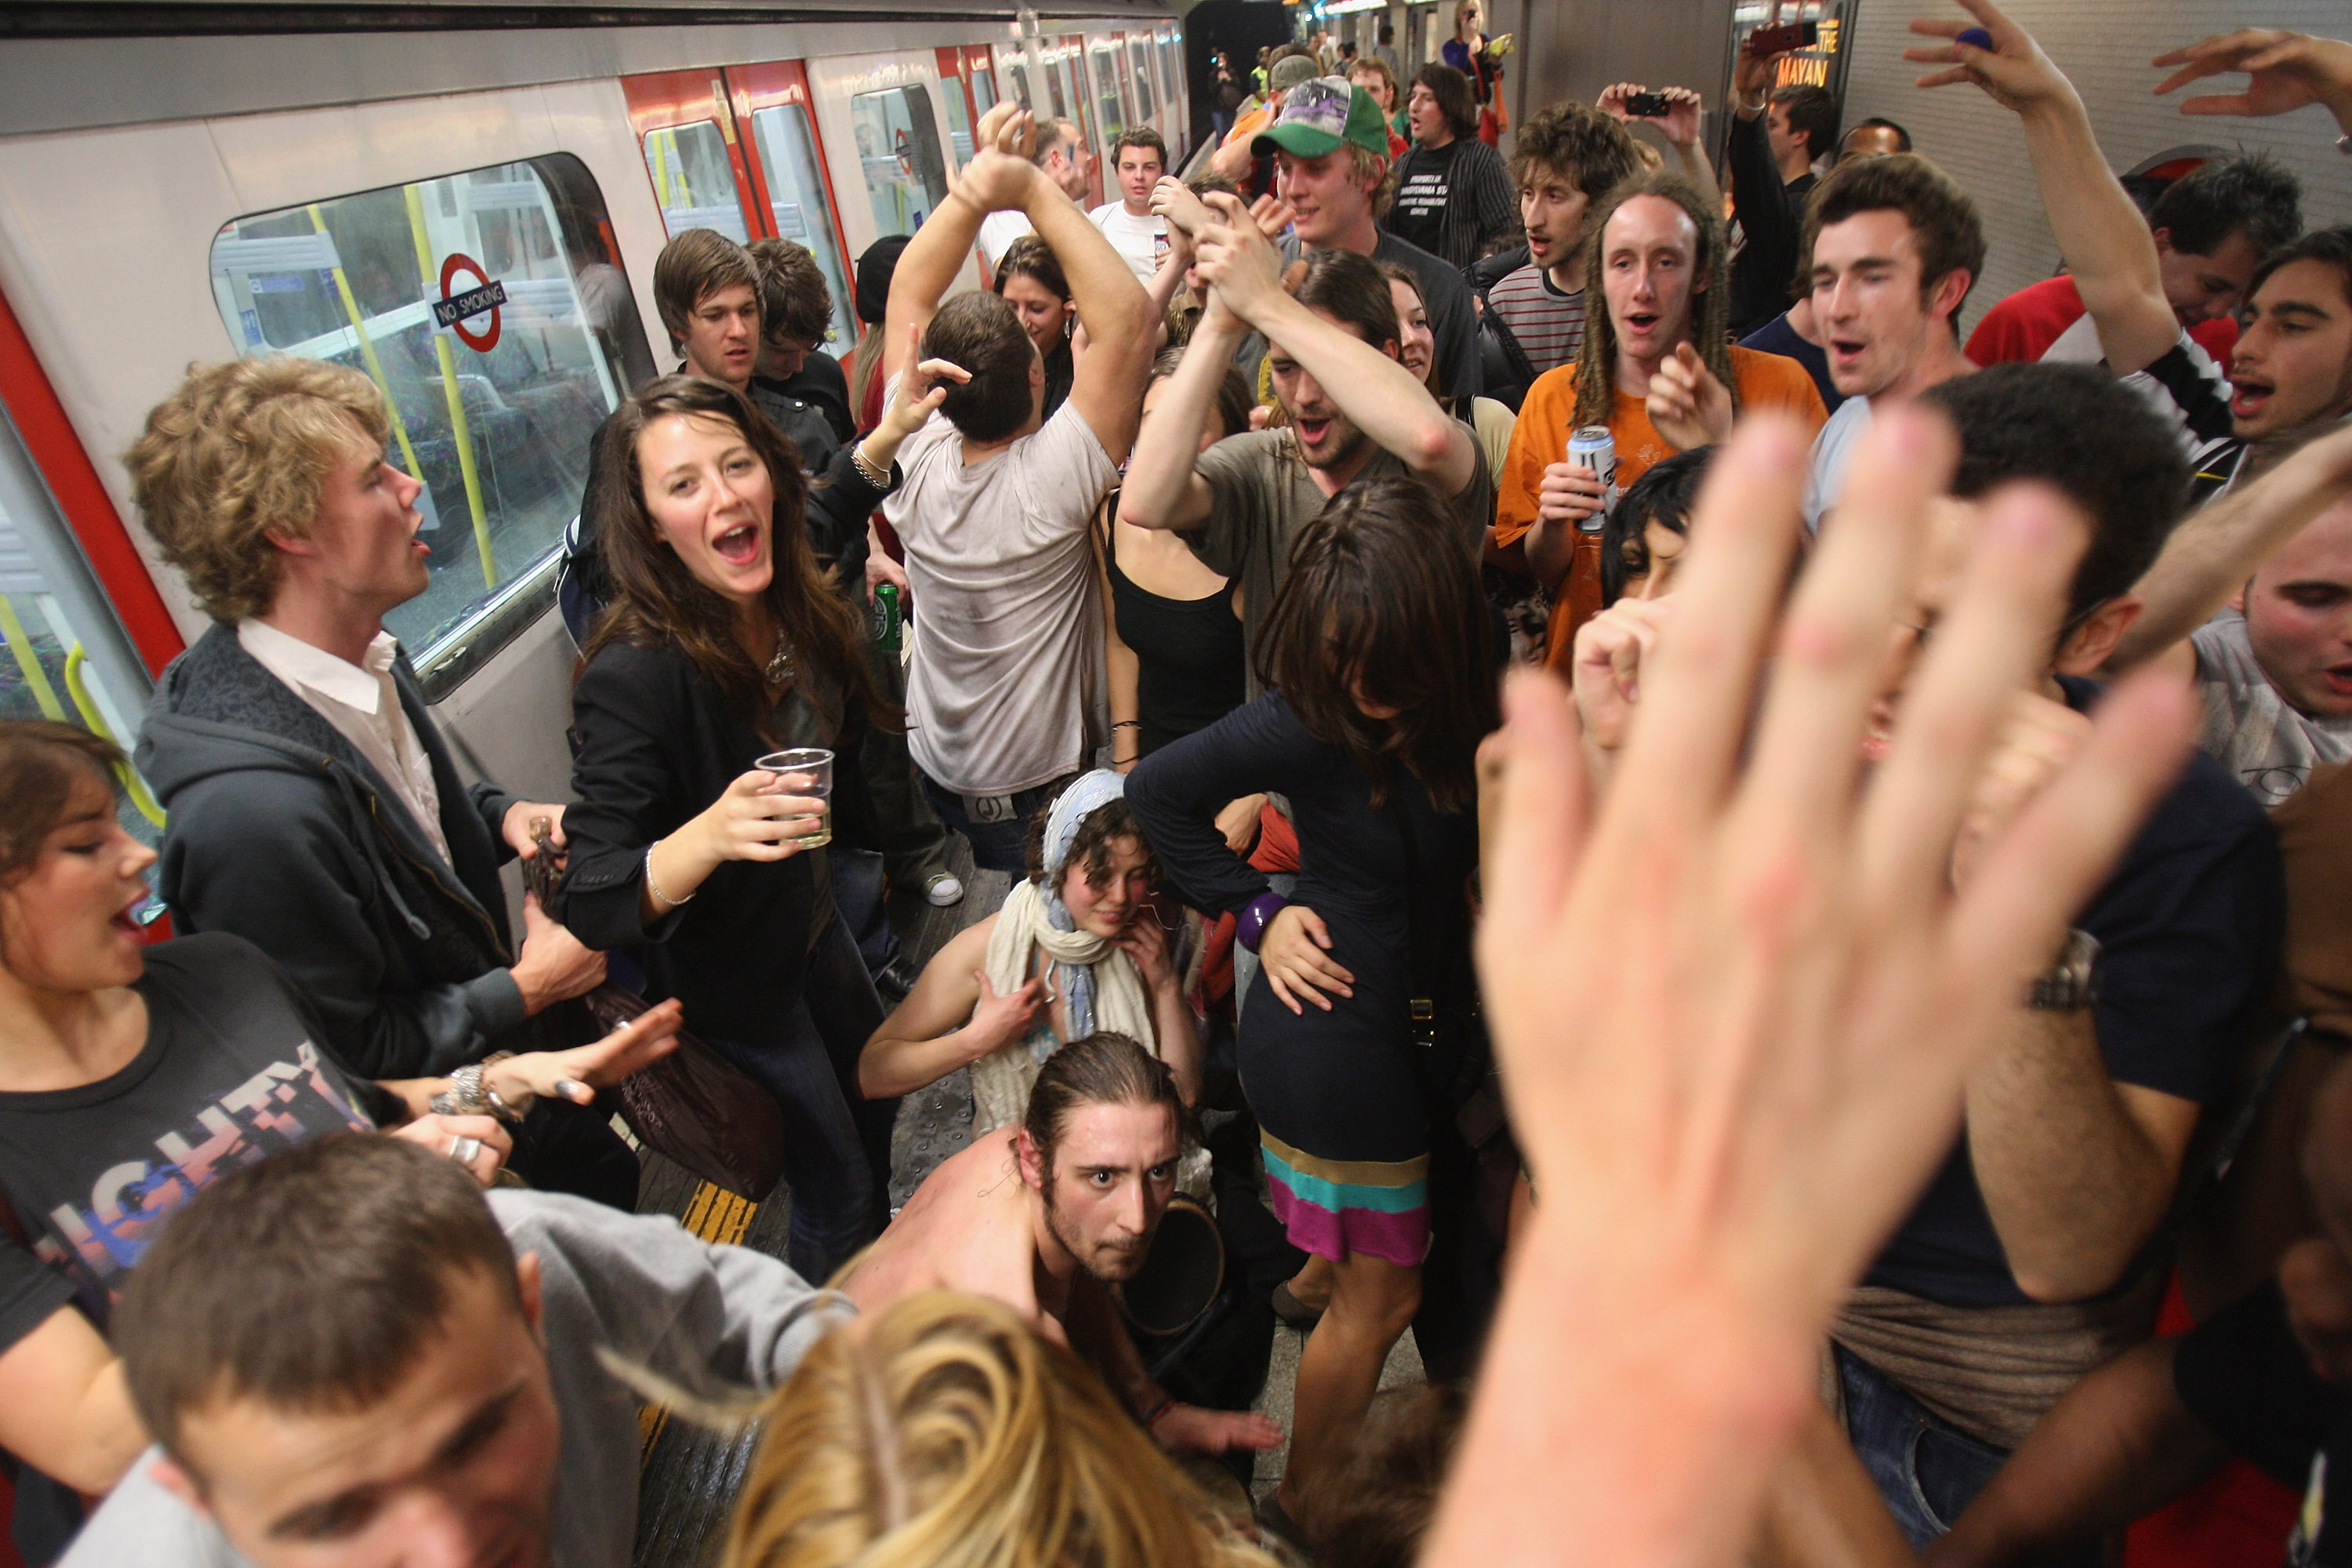 LONDON - MAY 31: Party revellers enjoy the atmosphere on the London Underground at King's Cross Station during a Facebook cocktail party on the Circle Line on May 31, 2008 in central London, England. Tonight is the last evening when Londoners can consume alcohol on public transport. The cocktail party, organised on the networking Web site Facebook, attracted thousands of revellers to enjoy one last drink on the London Underground before the ban's enforcement on June 1, 2008. The ban, introduced by the new London Mayor Boris Johnson, is an attempt to clean up unruly behaviour on the London public transport system. (Photo by Daniel Berehulak/Getty Images)